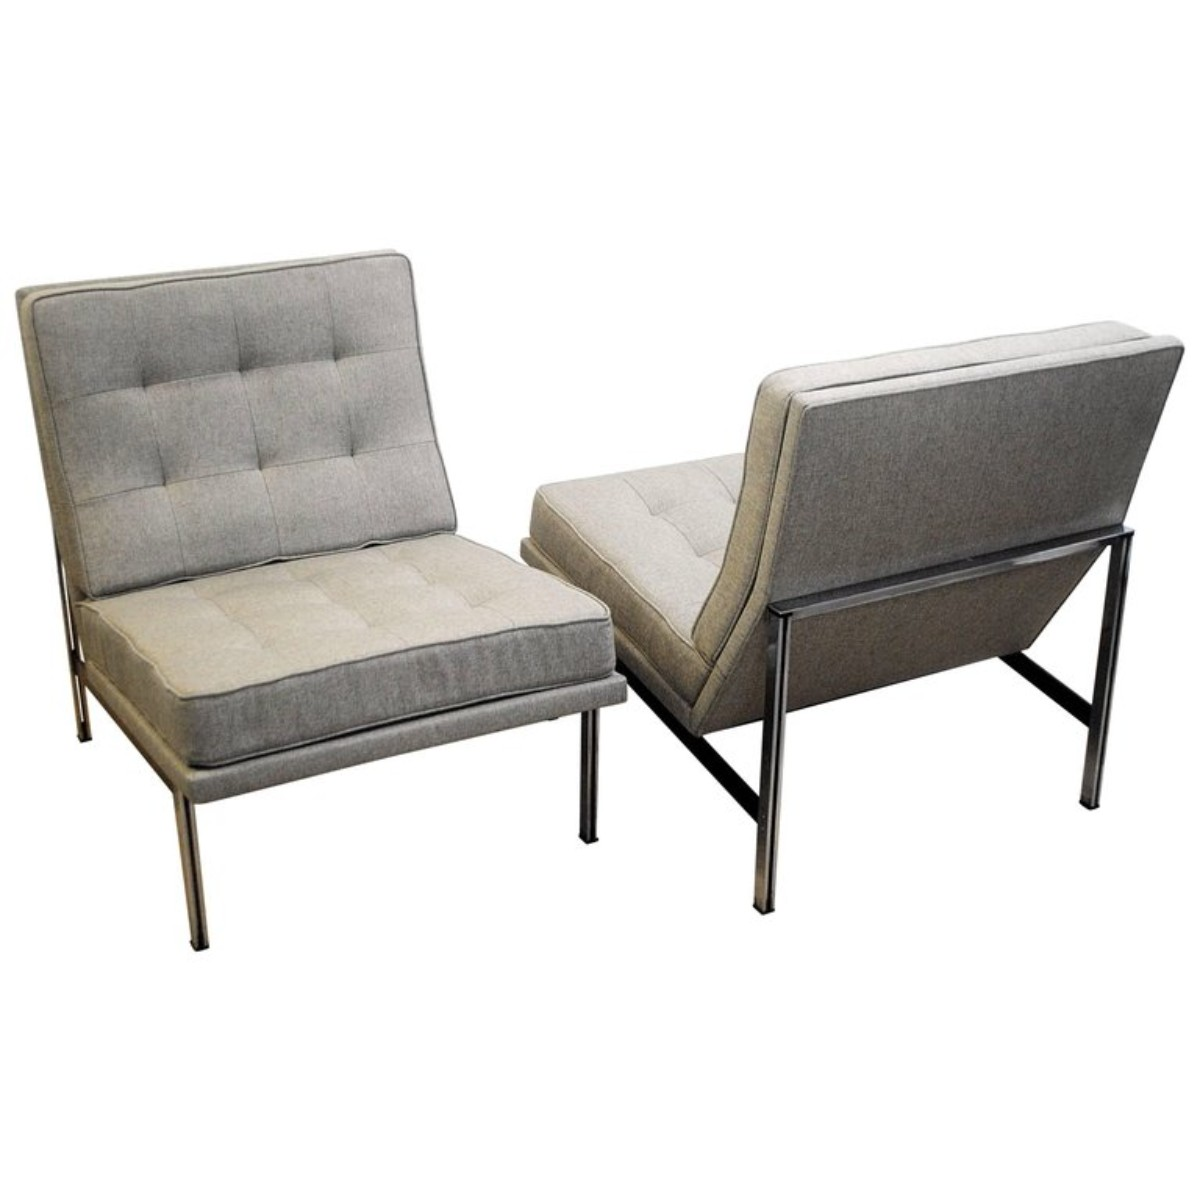 Pair Of Parallel Bar Lounge Chairs By Florence Knoll, 1950s   New Upholstery